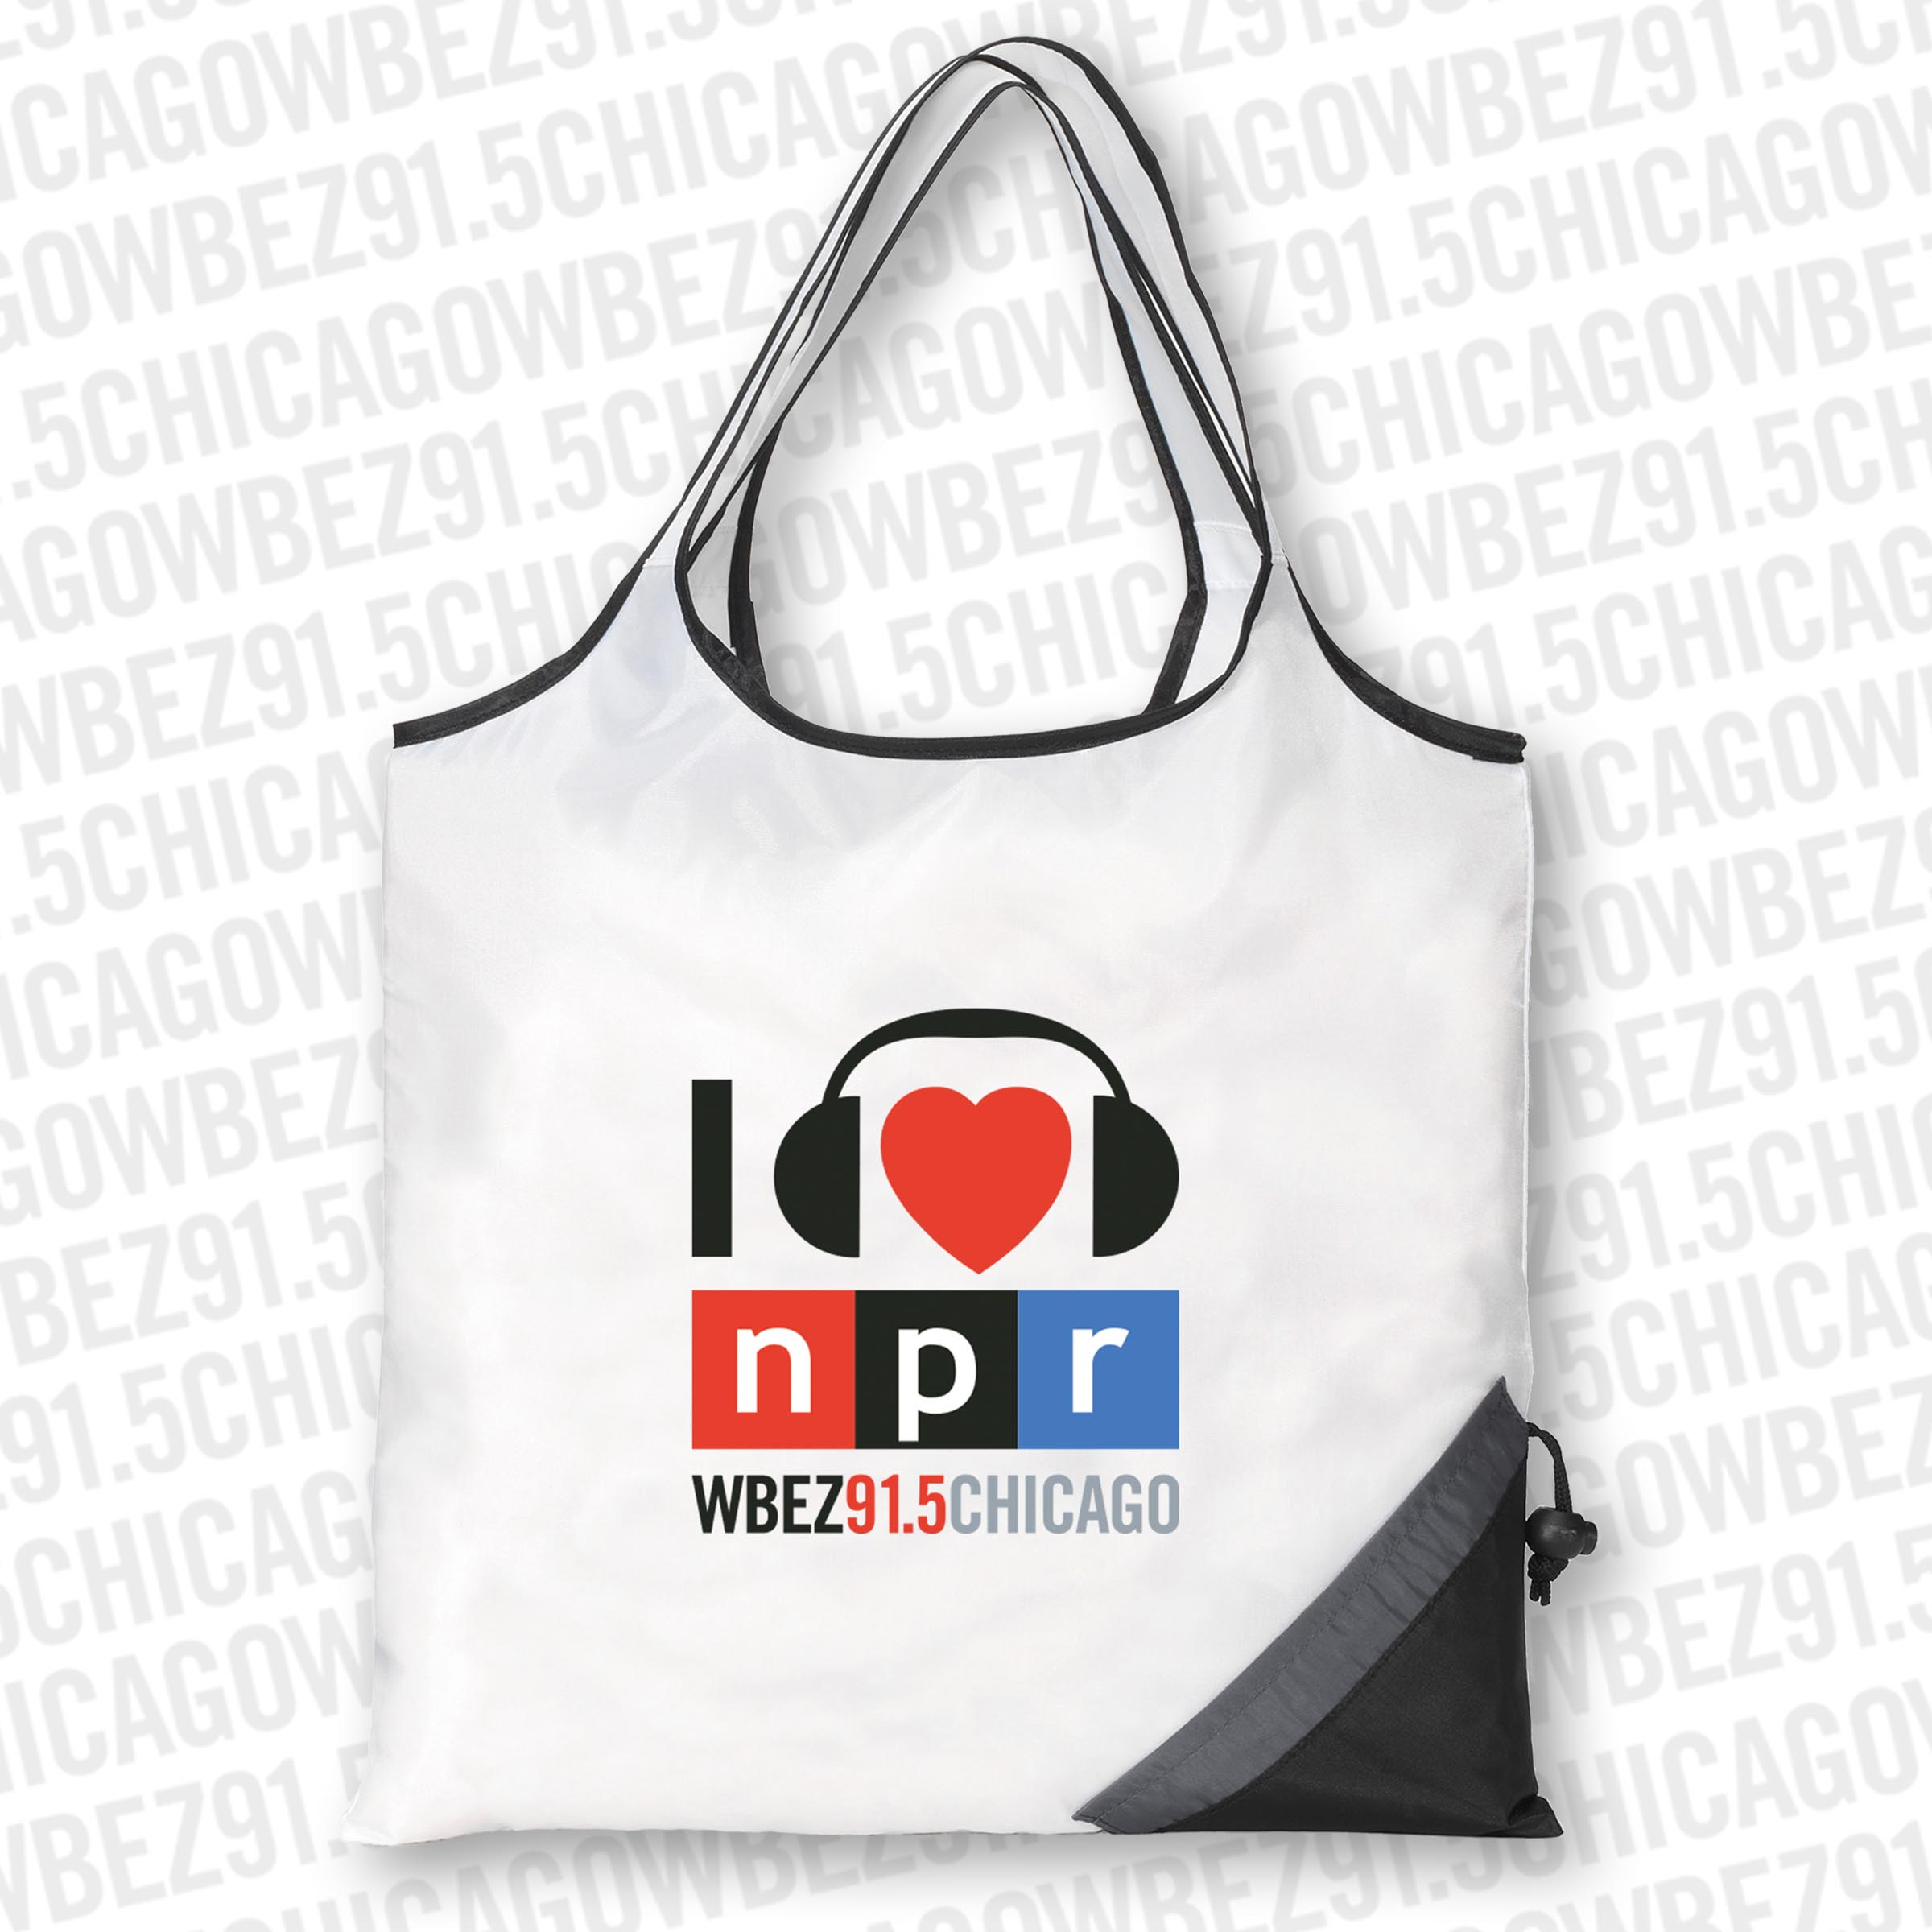 I Heart NPR Foldable Bag